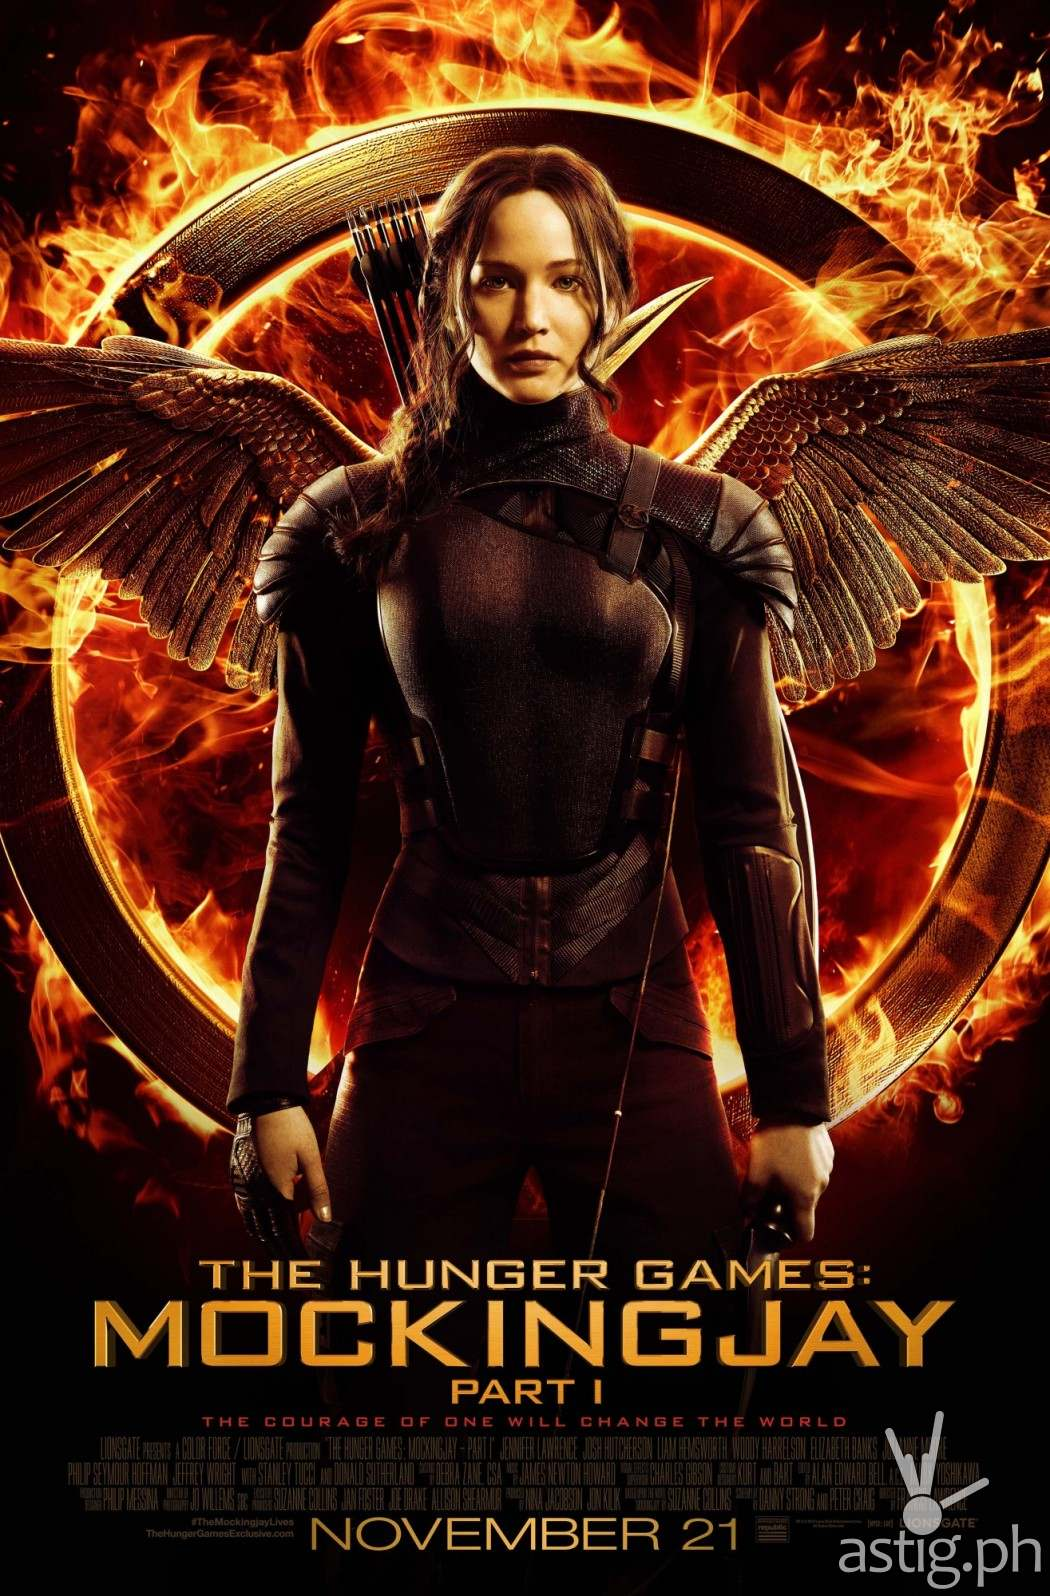 http://astig.ph/wp-content/uploads/2014/11/Hunger-Games-Mockingjay-1050x1596.jpg